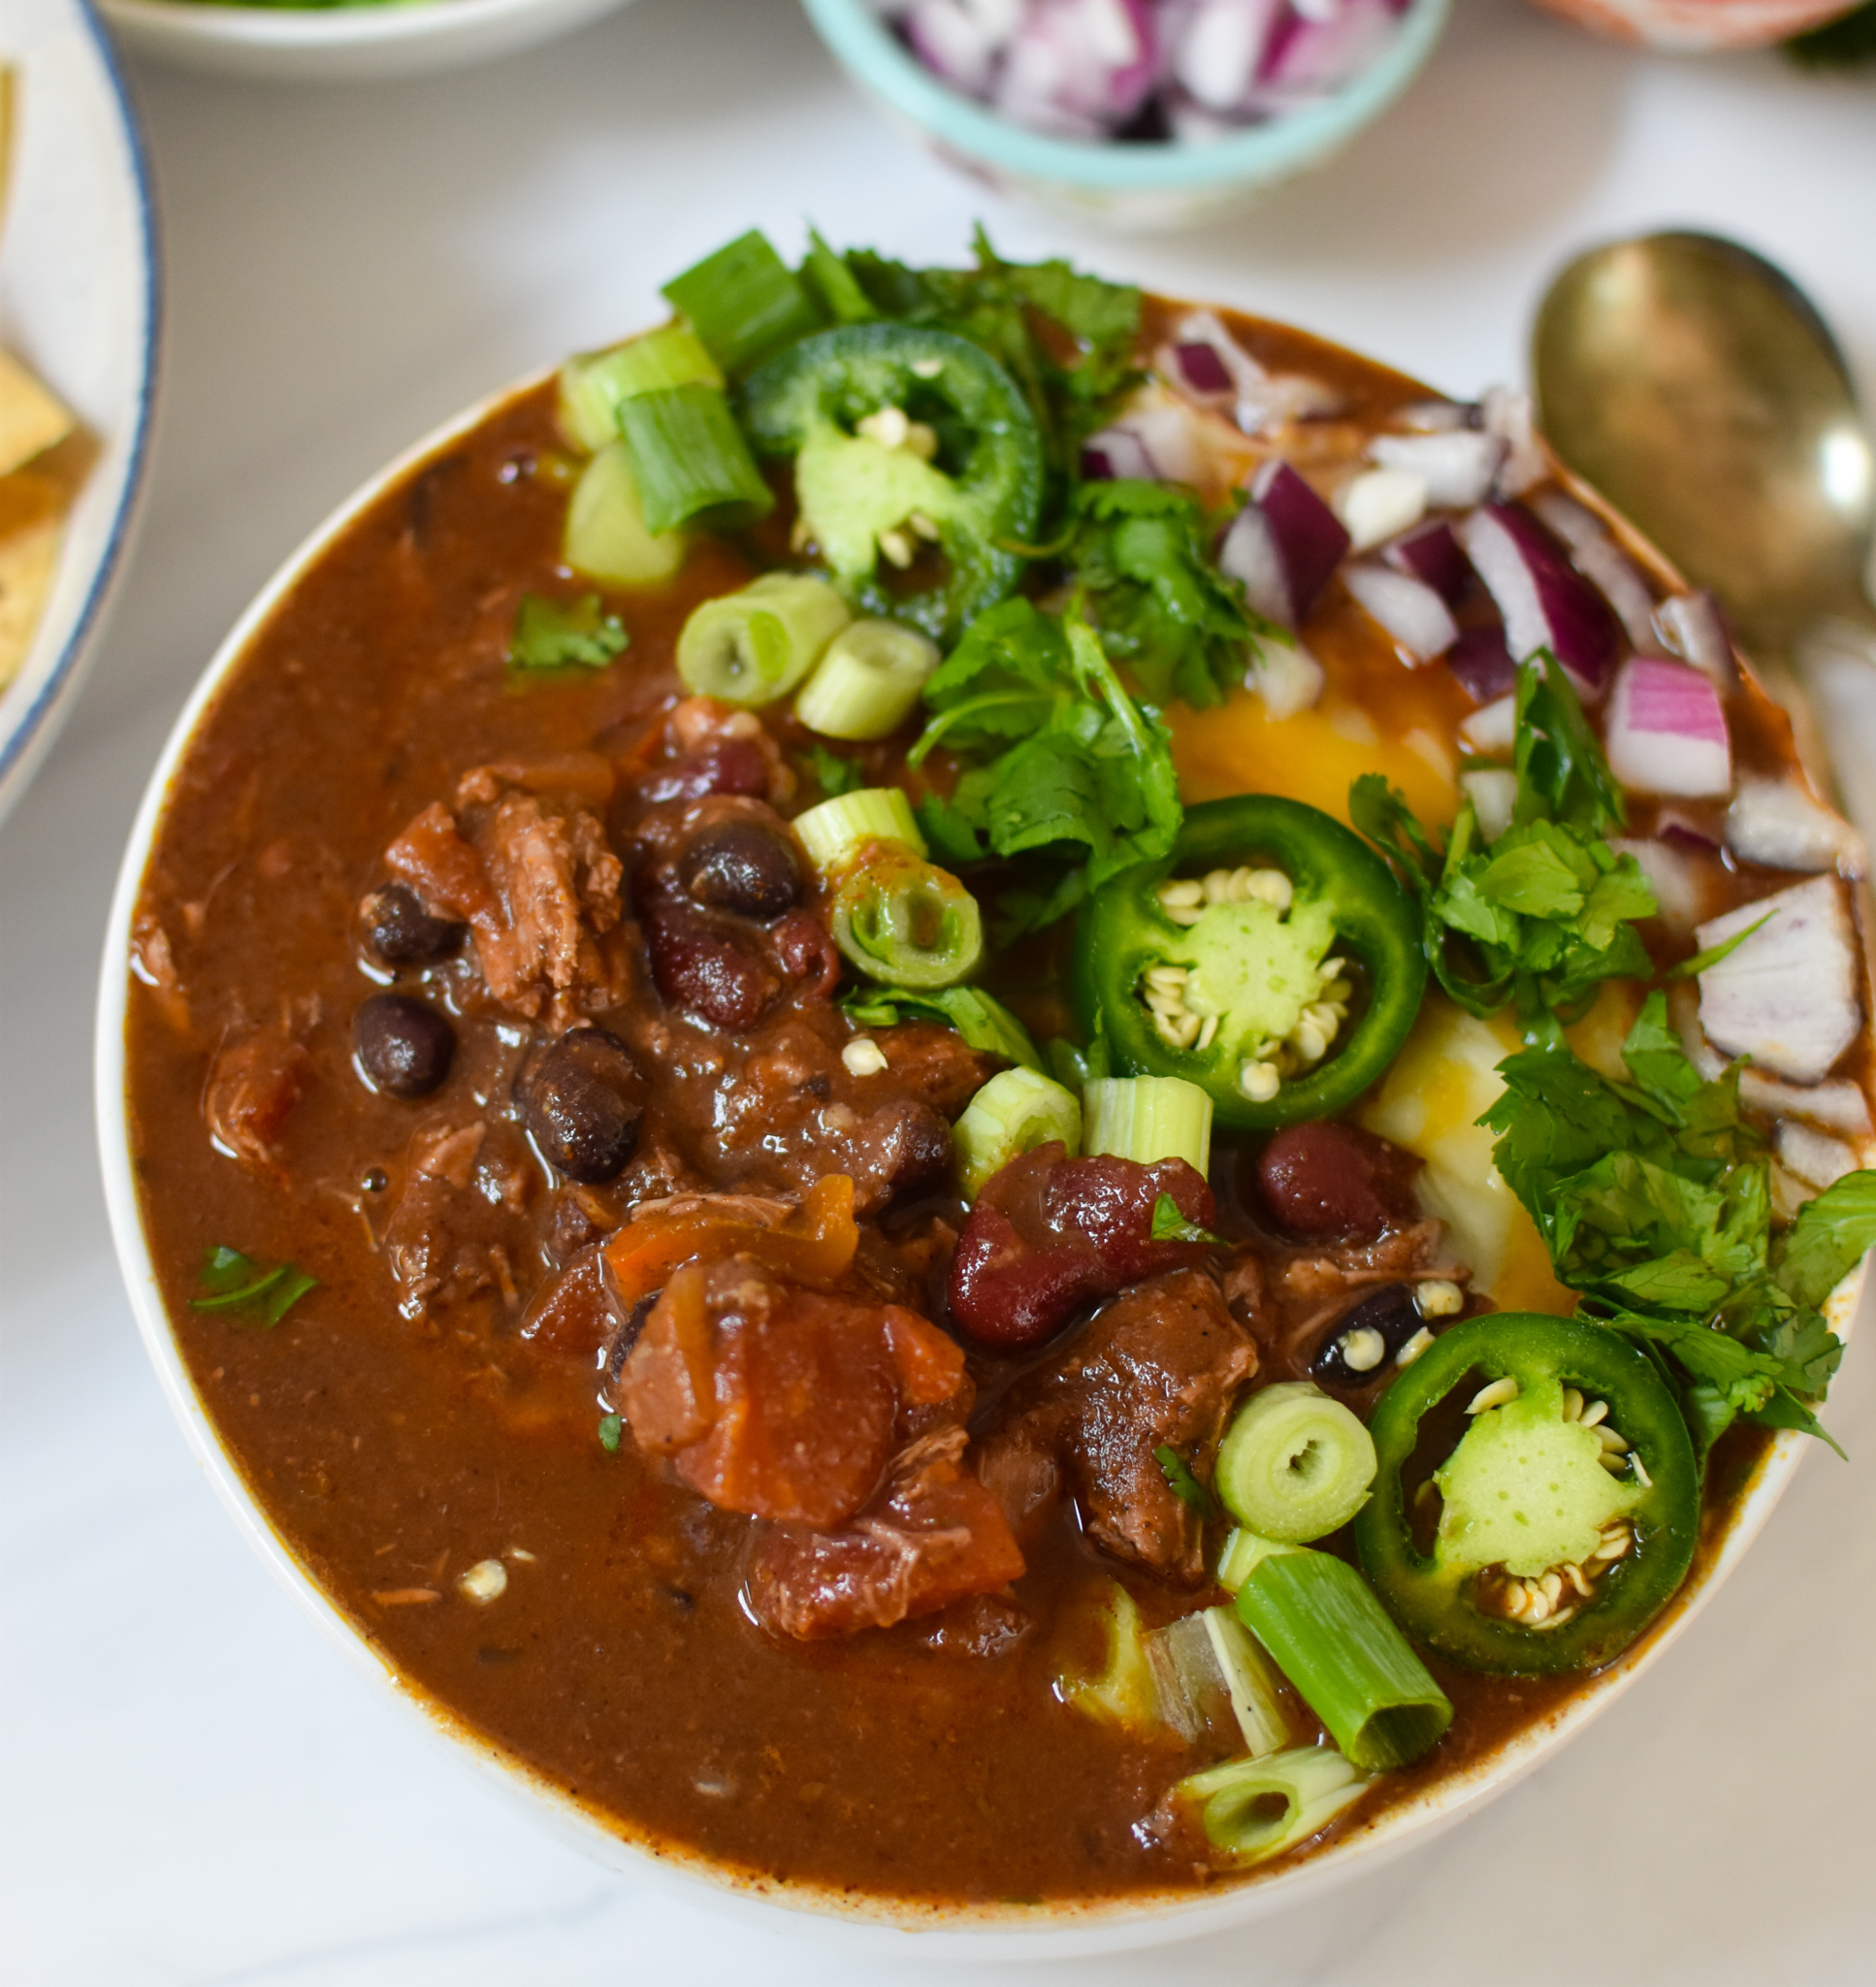 Chili Con Carne with garnishes.